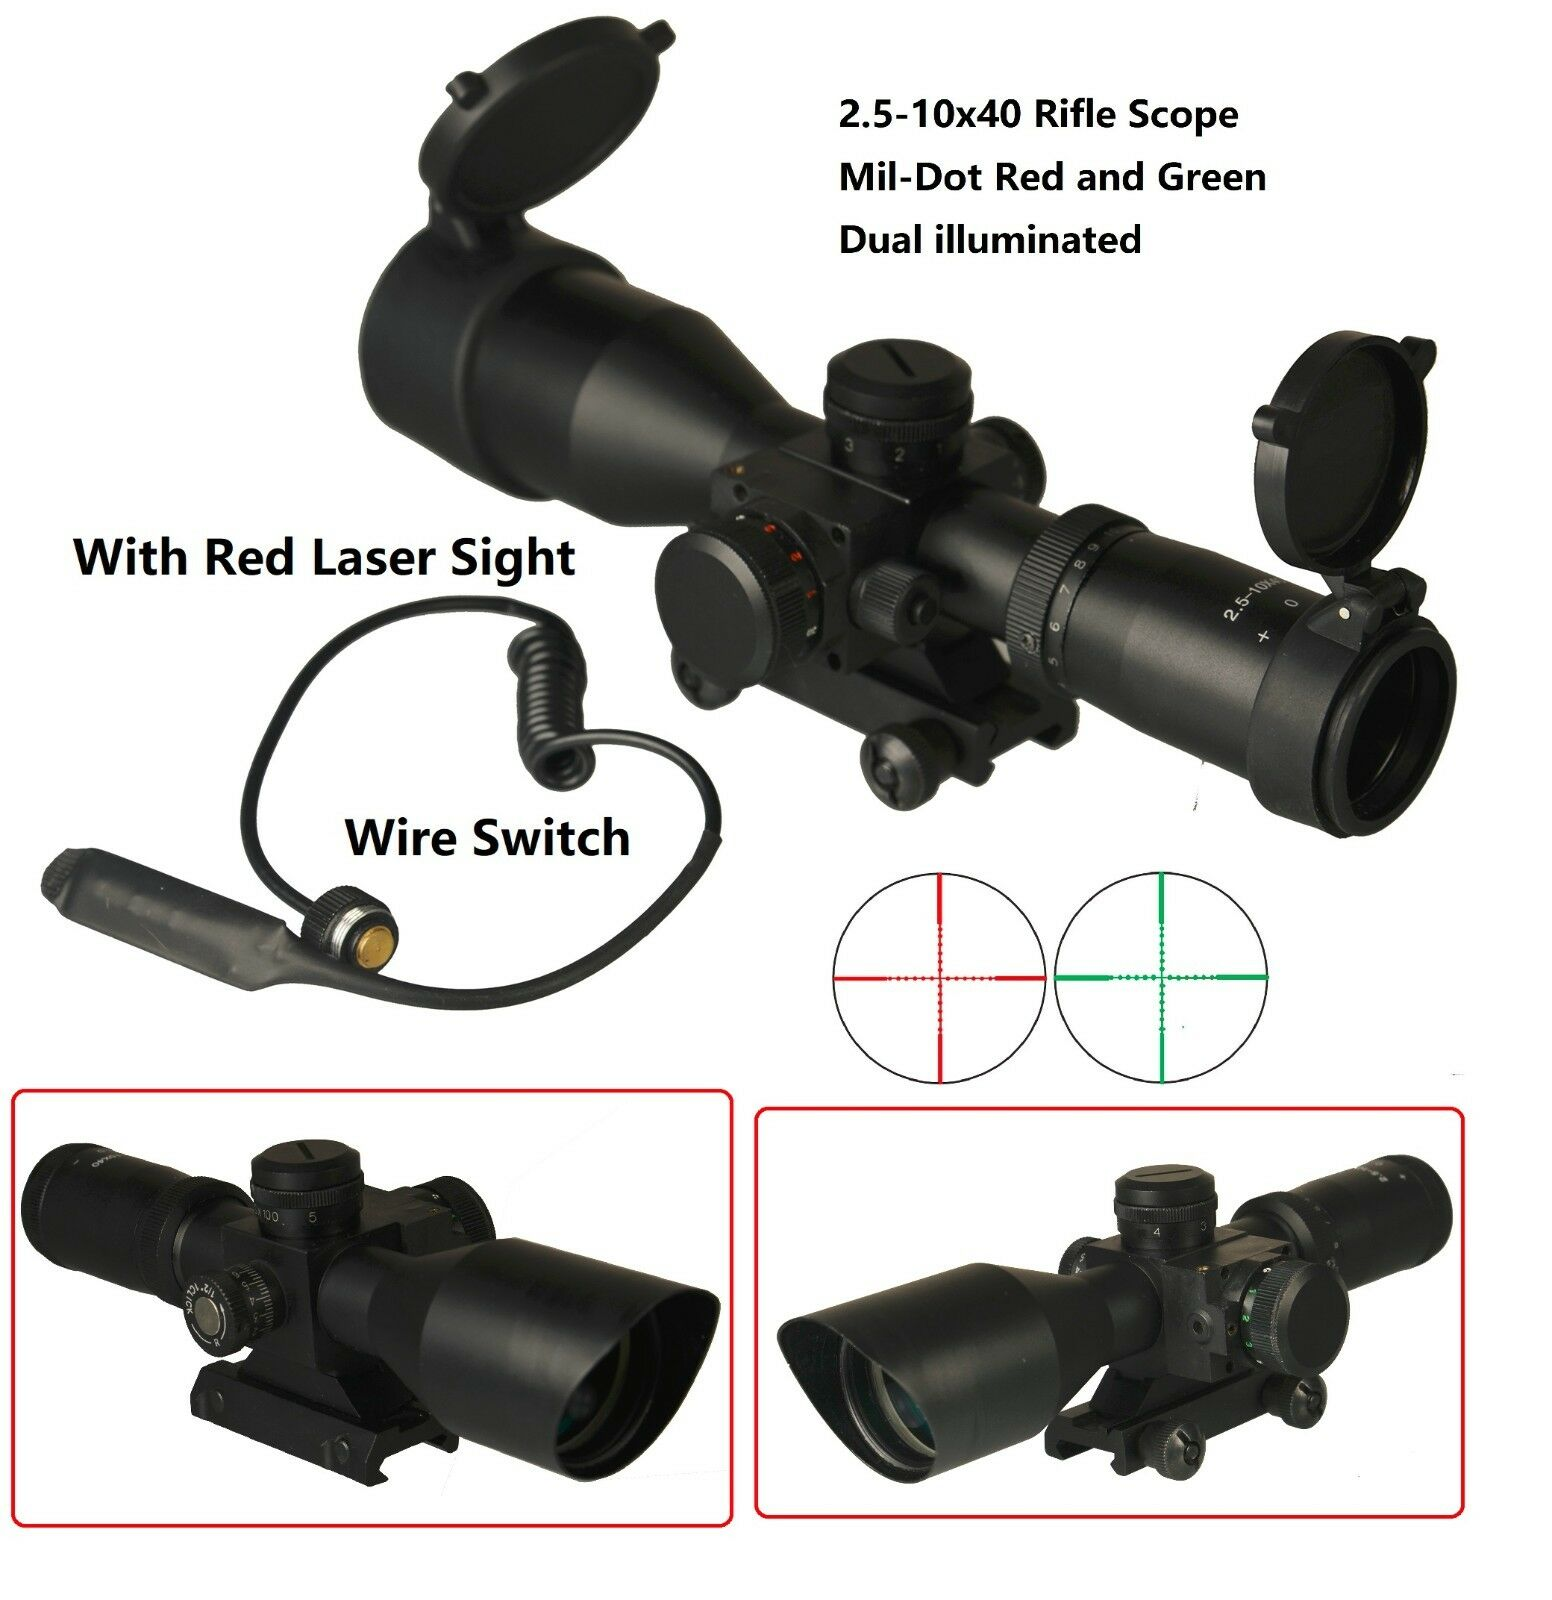 Tactical Compact 2.5-10x40 Scope Red and Green Iluminated, Red Laser Sight